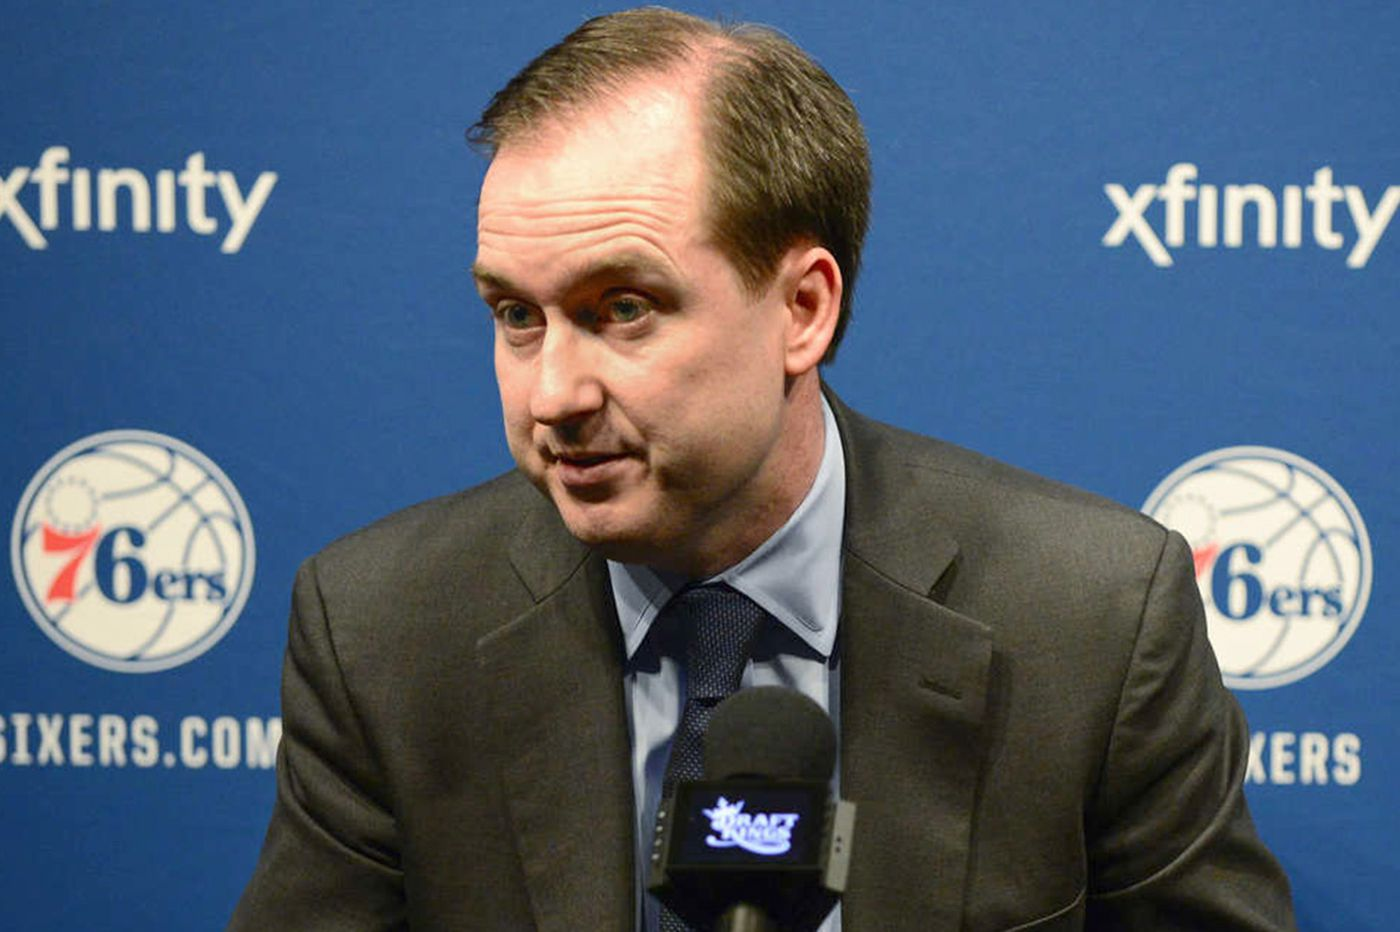 Inside the 76ers: If the plan works, fans' memories could be short